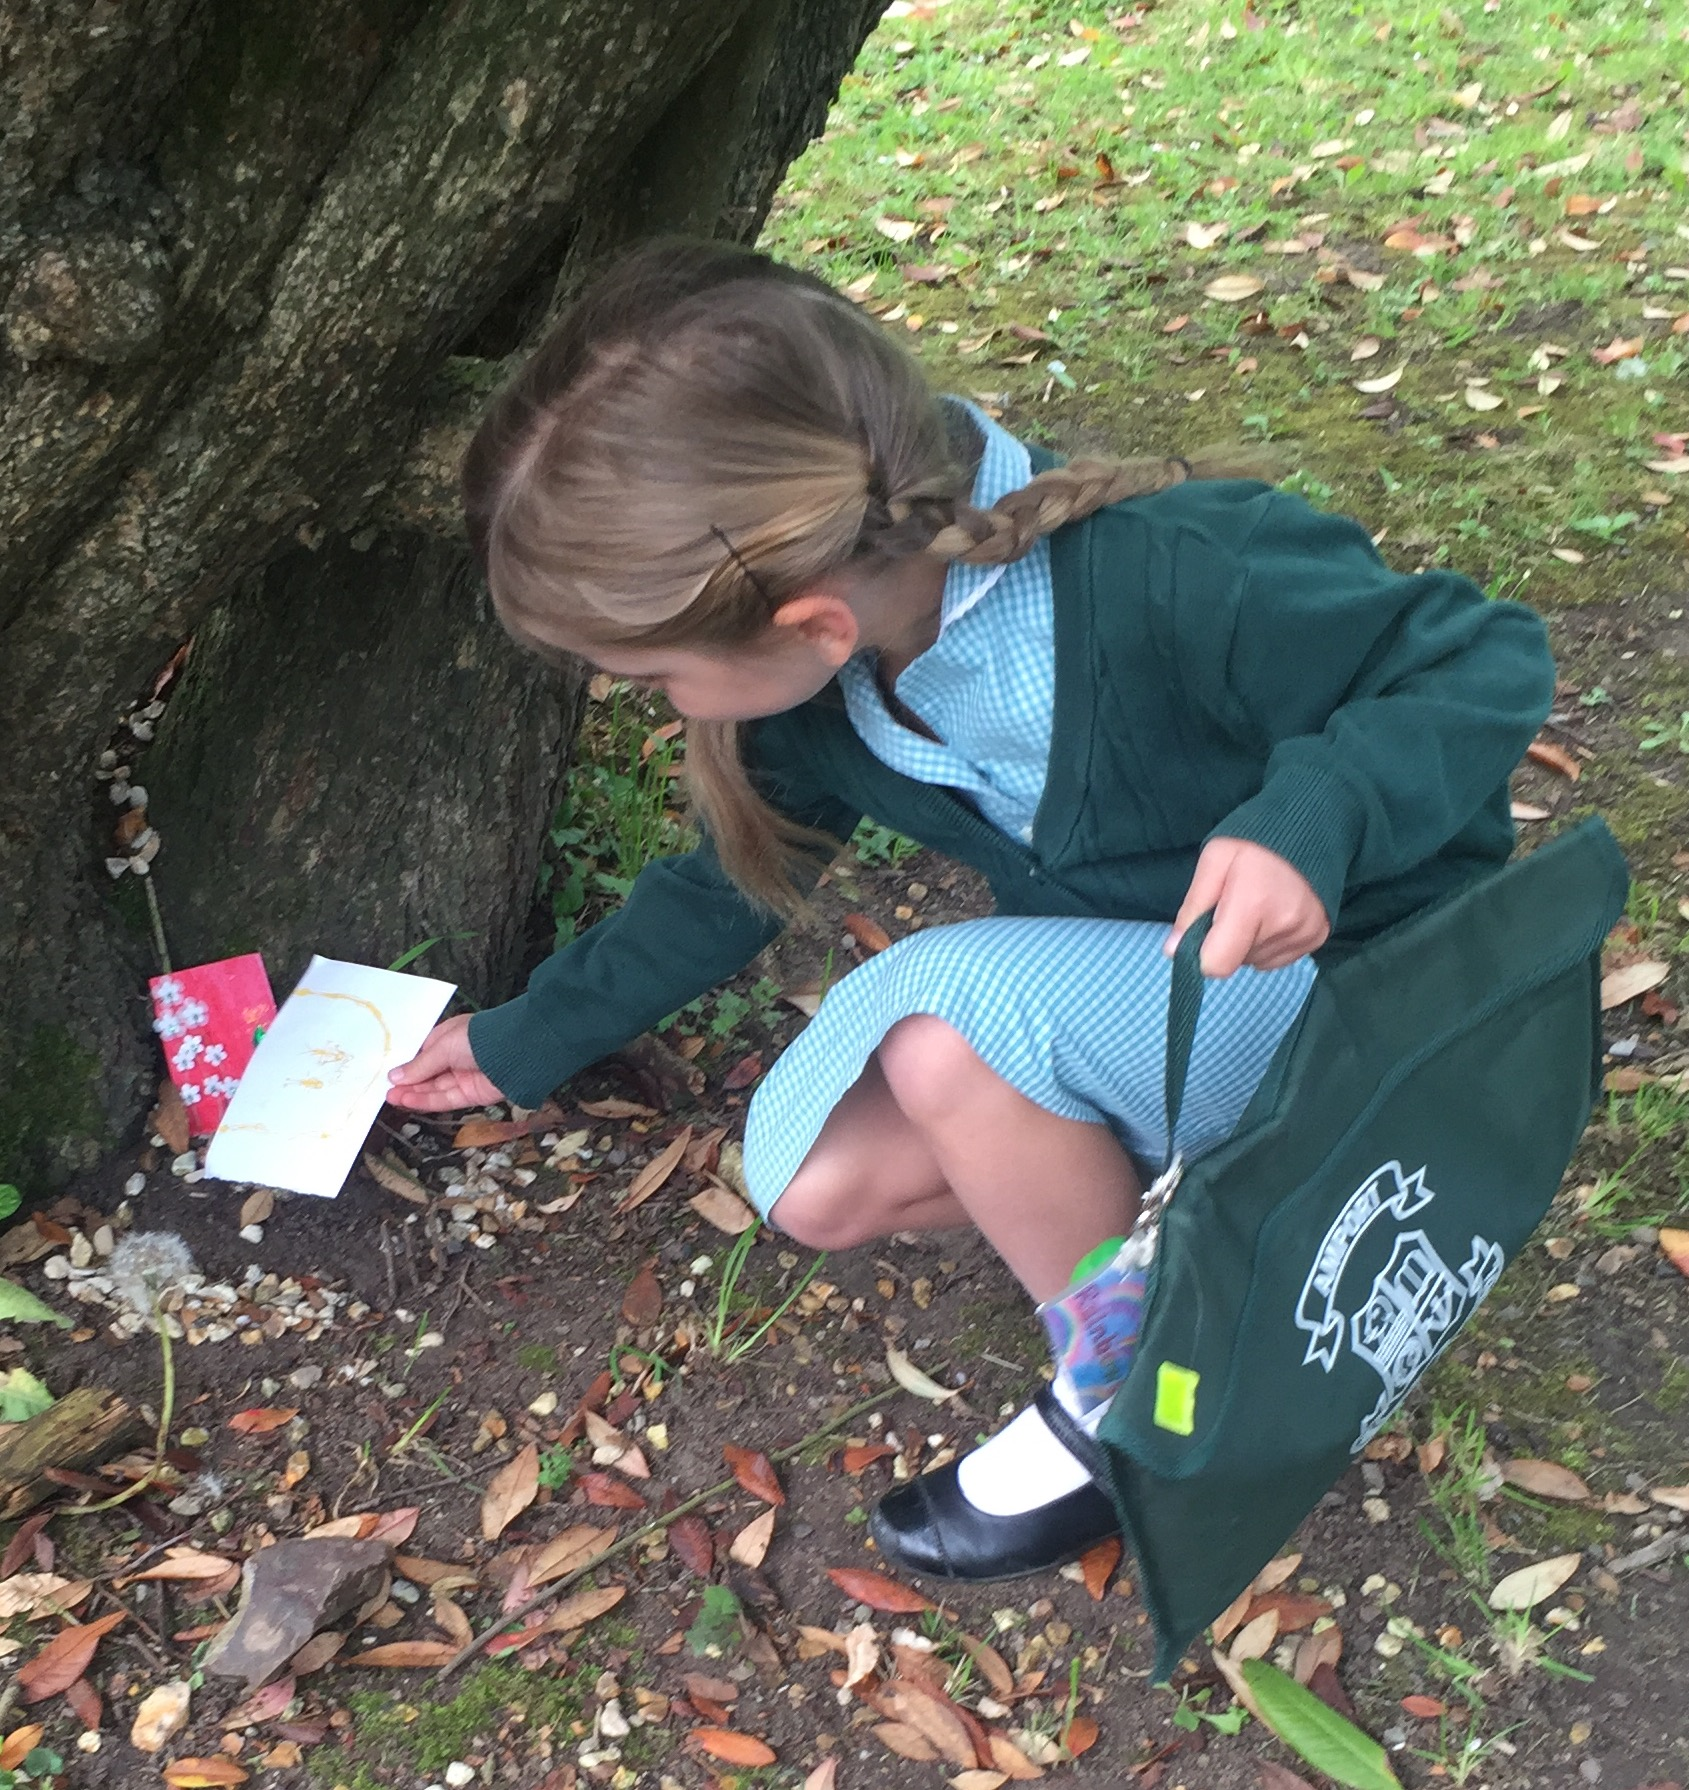 The Littlest leaving a letter for the Fairy Queen